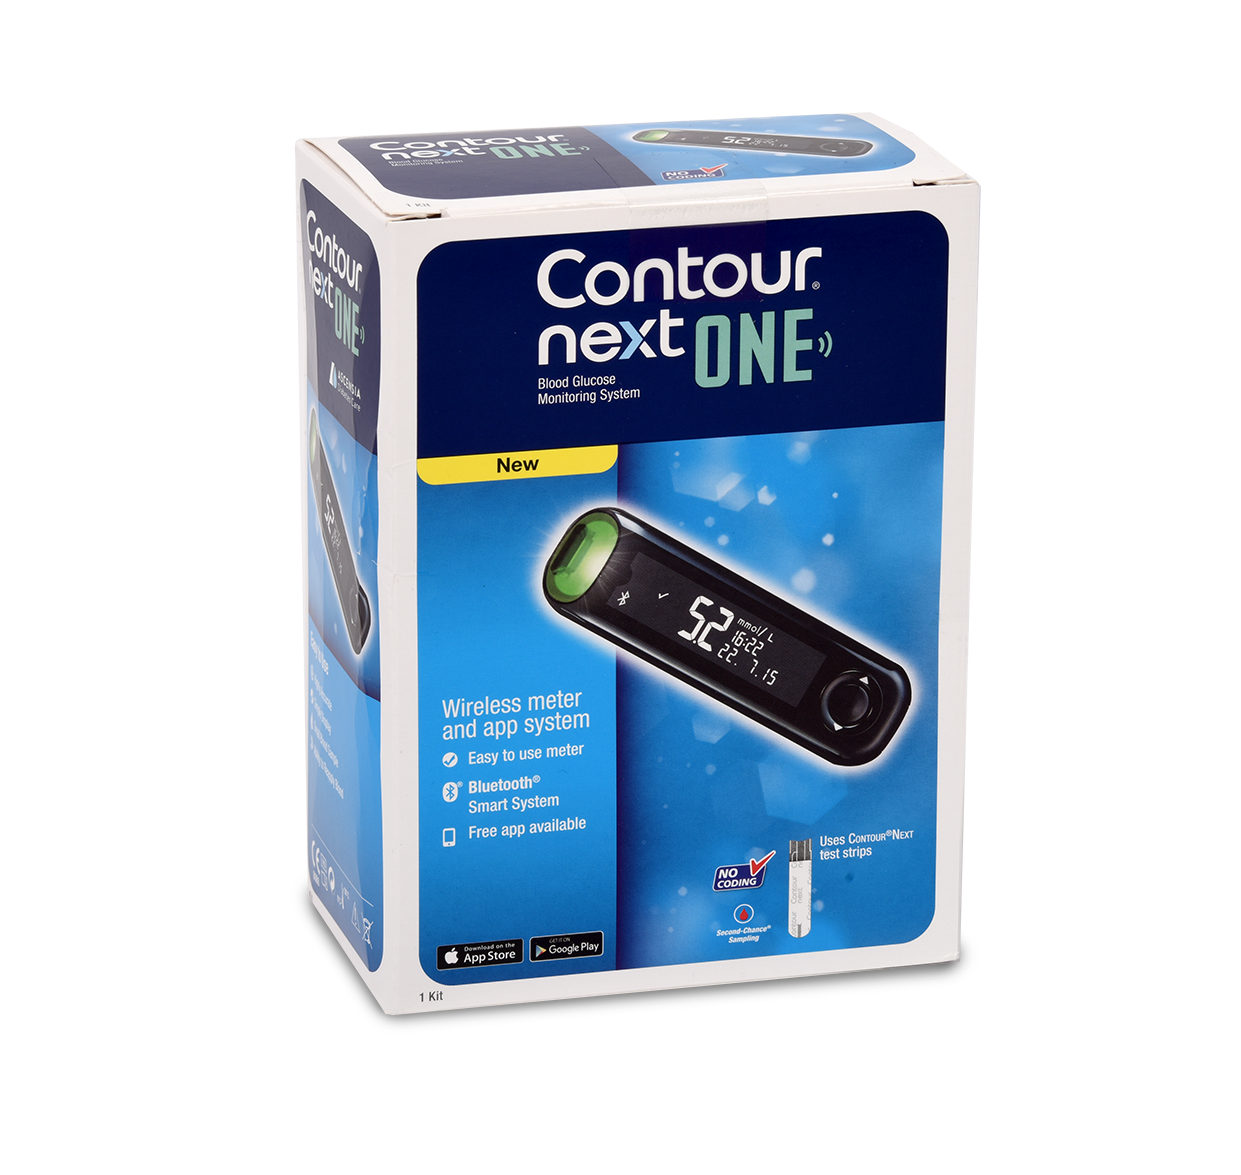 Contour Next One meter box